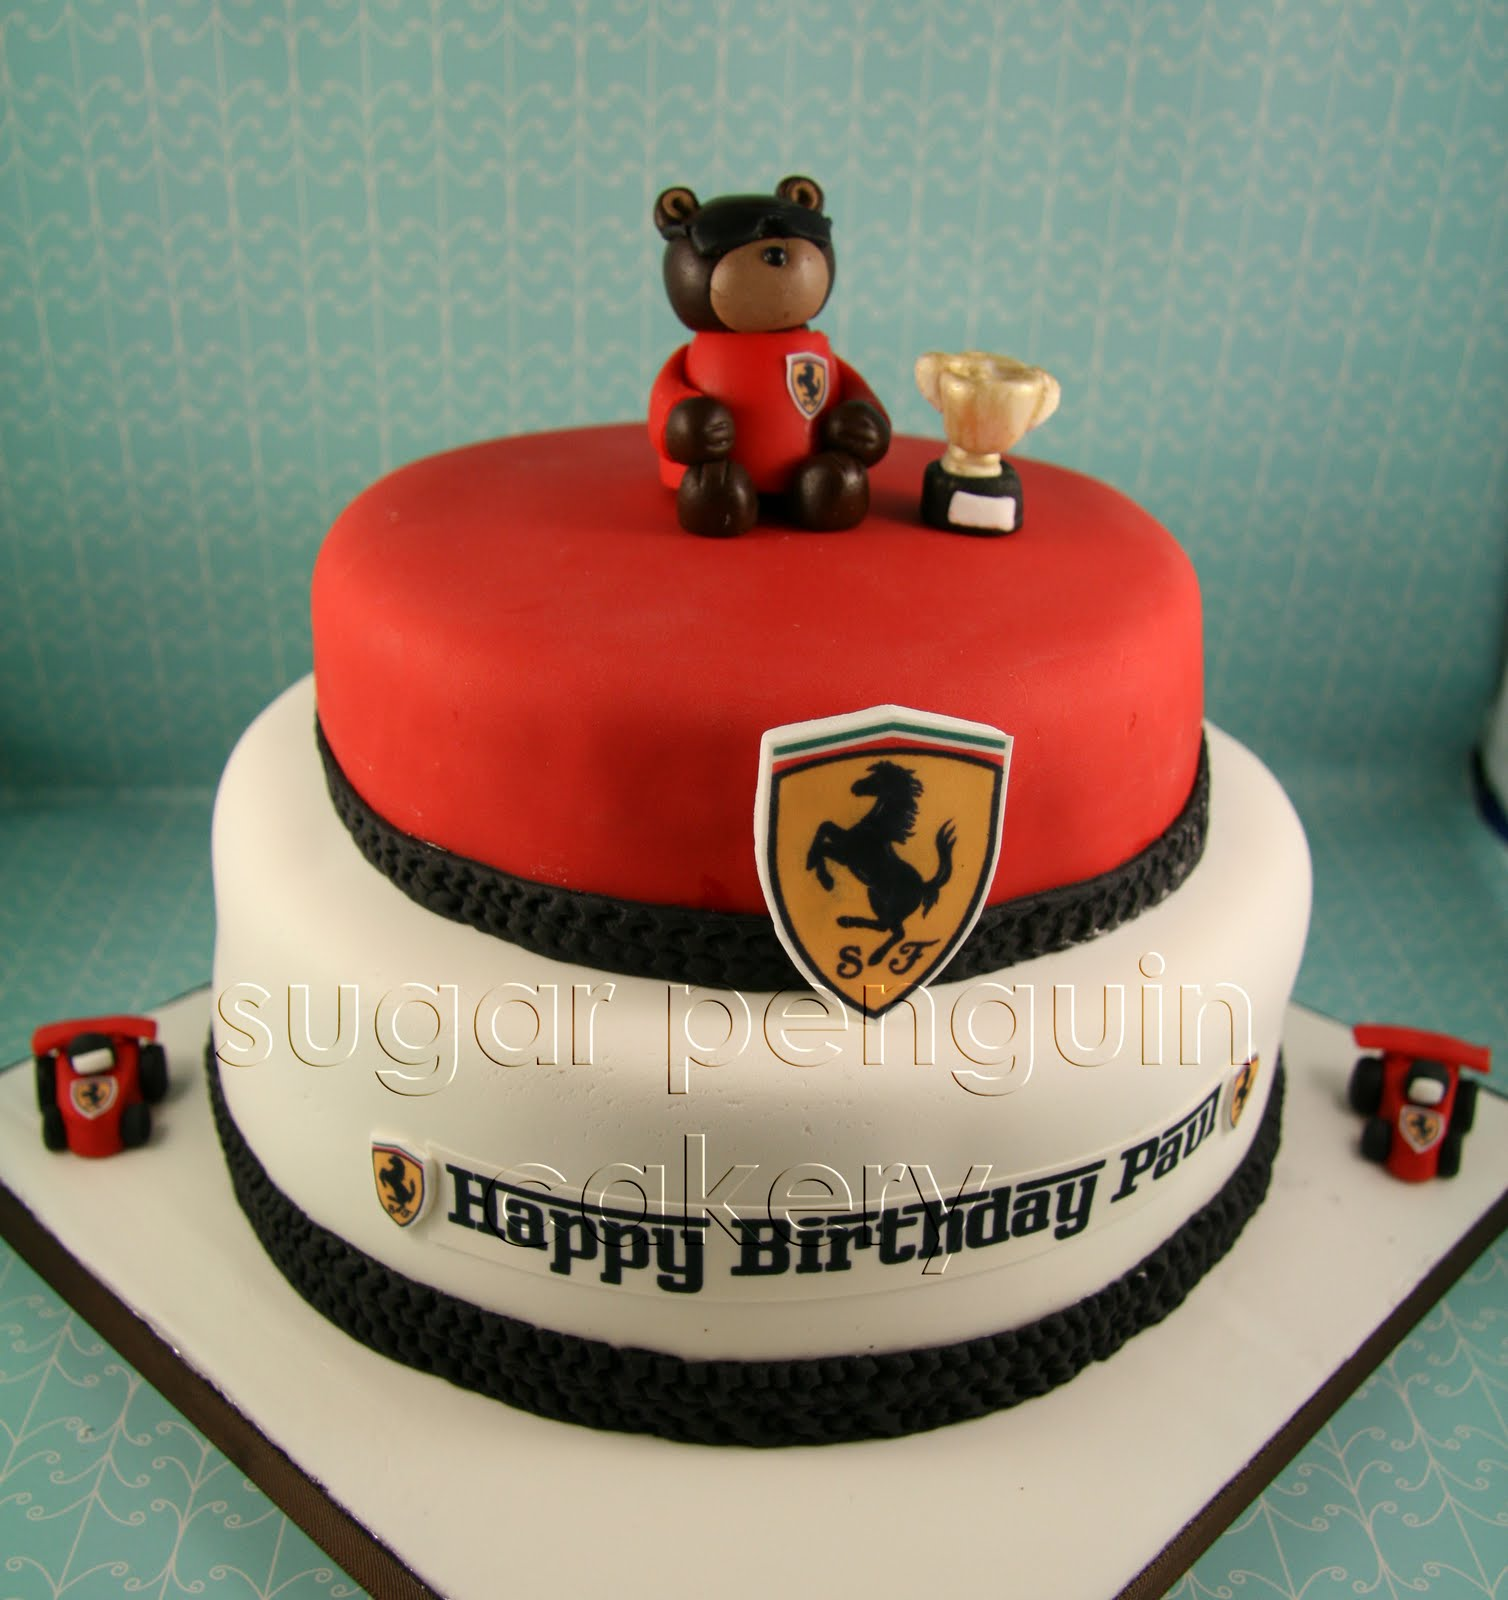 As For The Birthday Message We Did It In Ferrari Font To Just Match Whole Themed Cake Then Added Two Little Race Cars